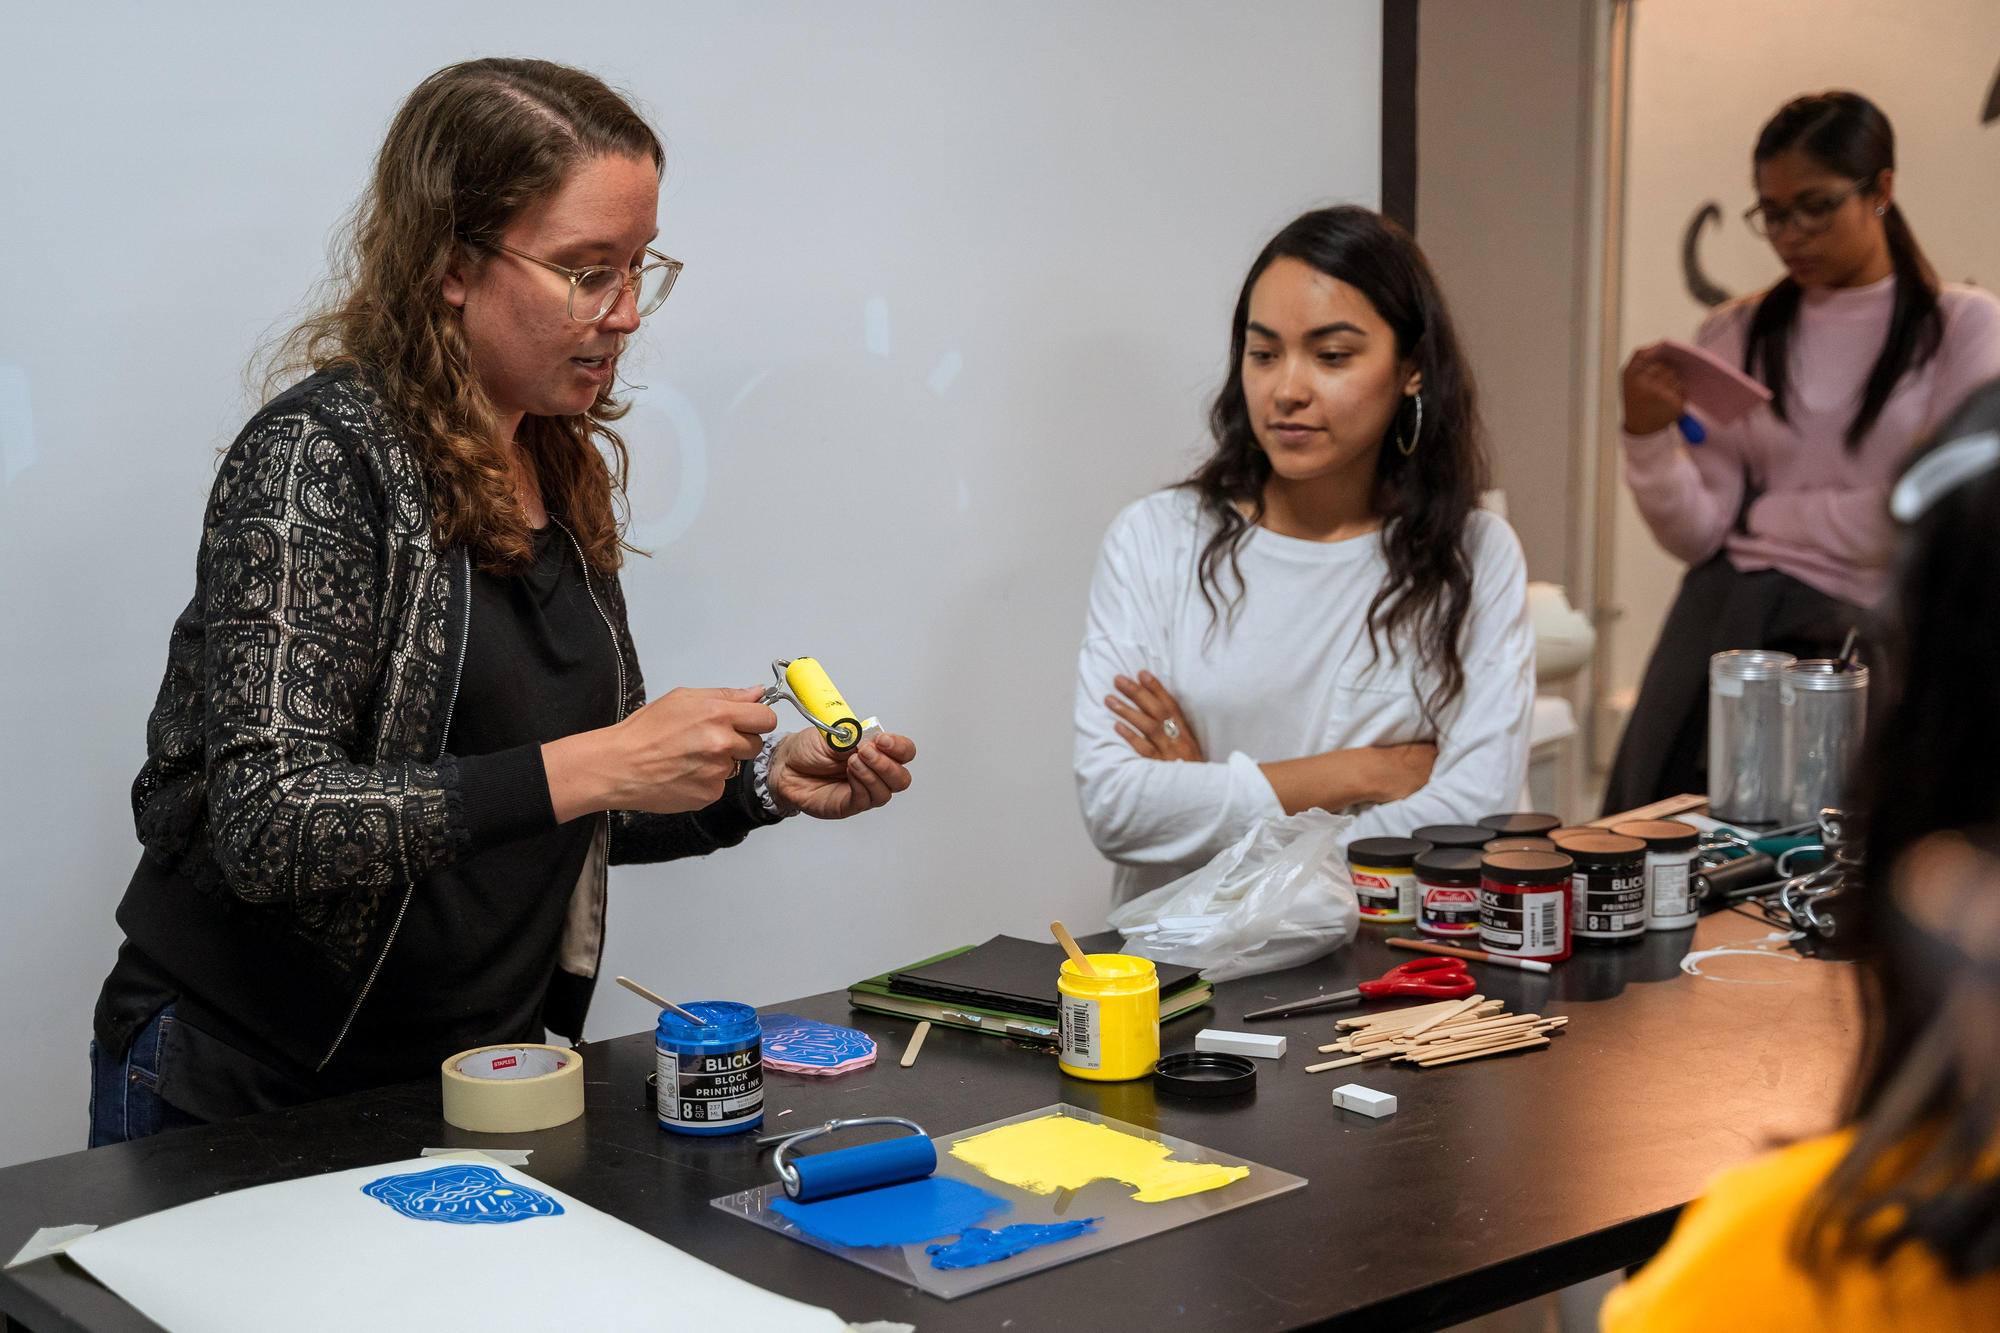 Urbano Project students learn about print-making. Photo by Faizal Westcott, June 2019.